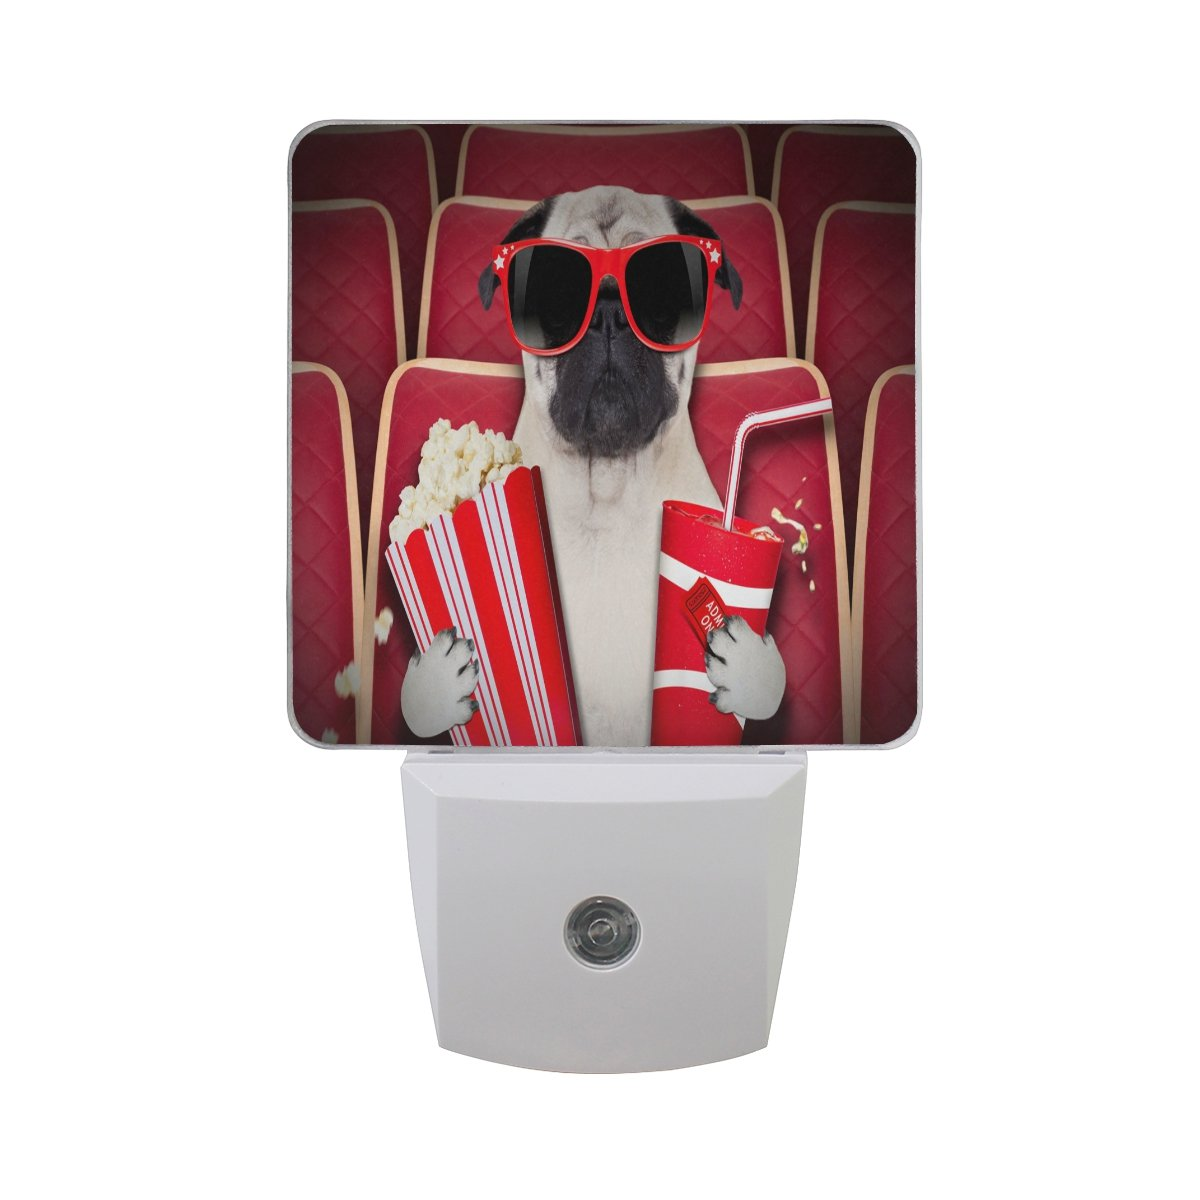 Saobao LED Night Light Energy saving Dog At The Movies Auto Senor Dusk to Dawn Night Light great for Bedroom bathroom living room Hallway any dark room, for child and adults